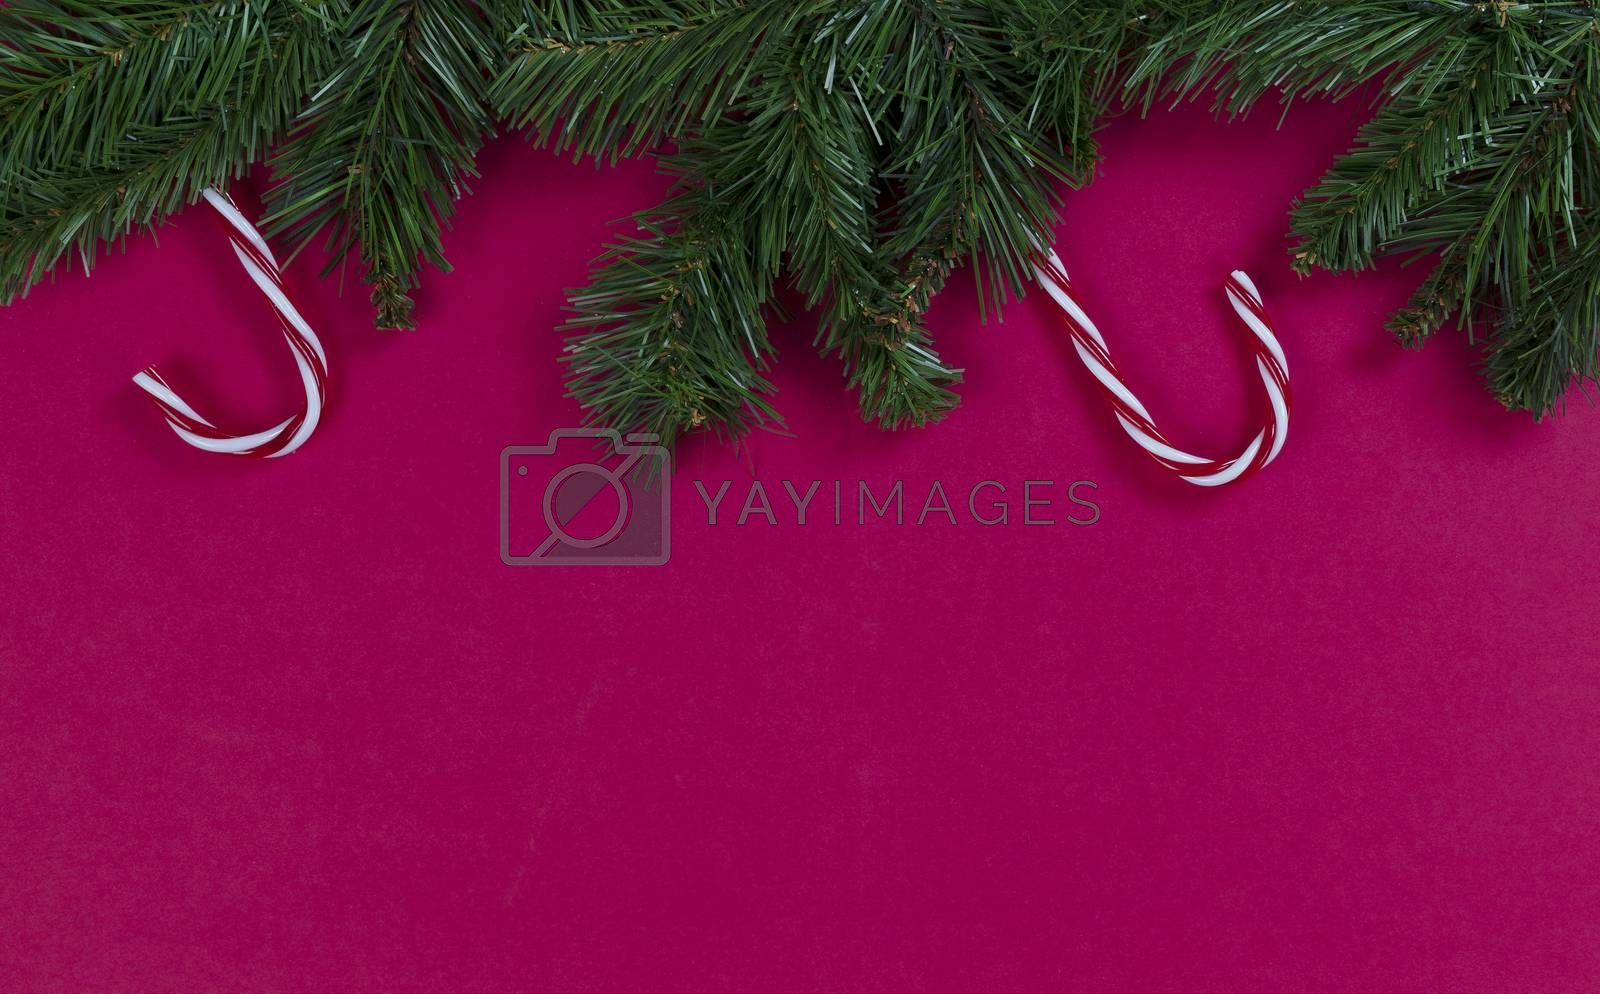 Merry Christmas and happy New Year on a red background with evergreen branches and candy canes plus plenty of copy space